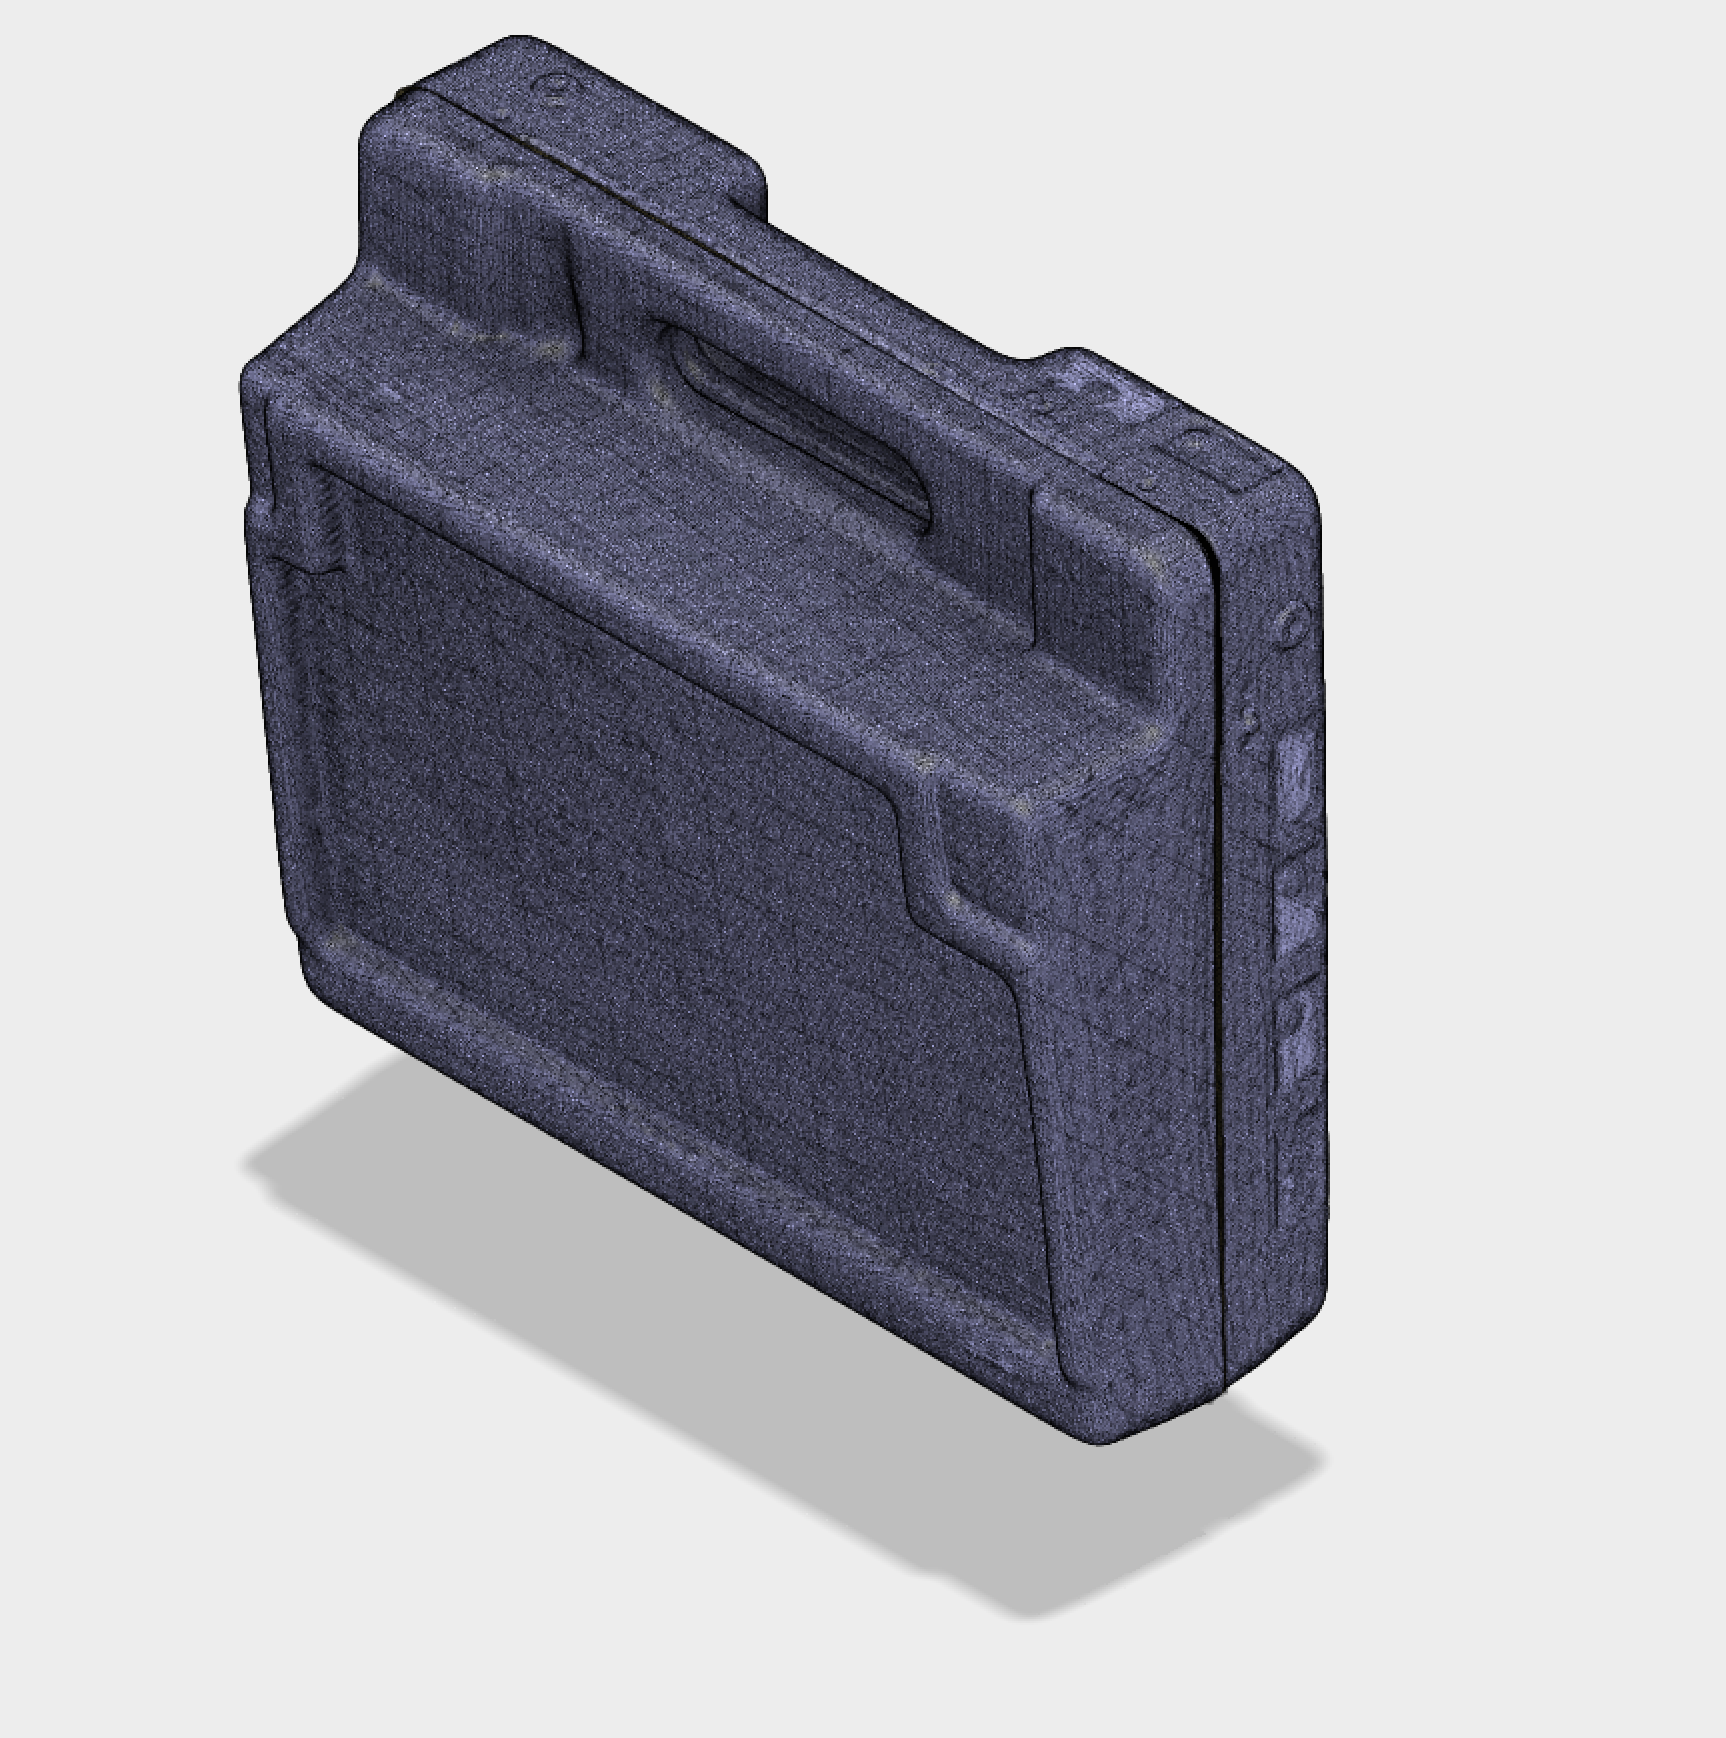 Solved: 3D Scans and Reverse Engineering in Fusion 360 - Autodesk